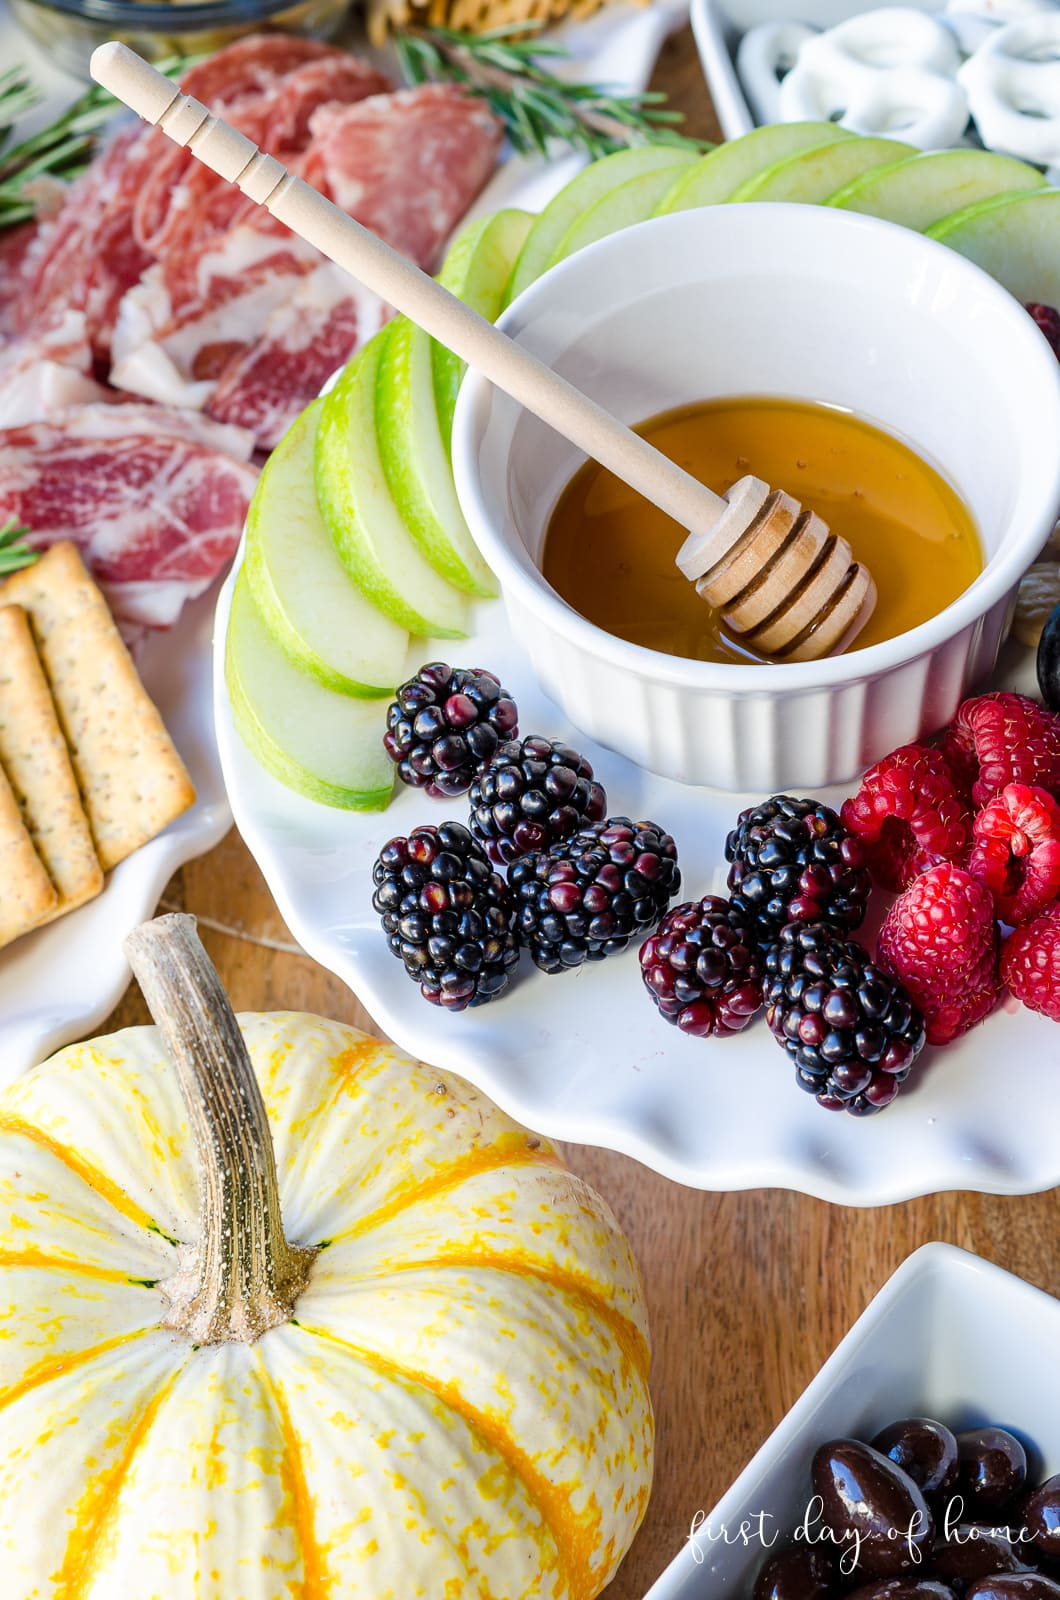 Raspberries, blackberries and green apple slices with honey on cake stand in charcuterie board